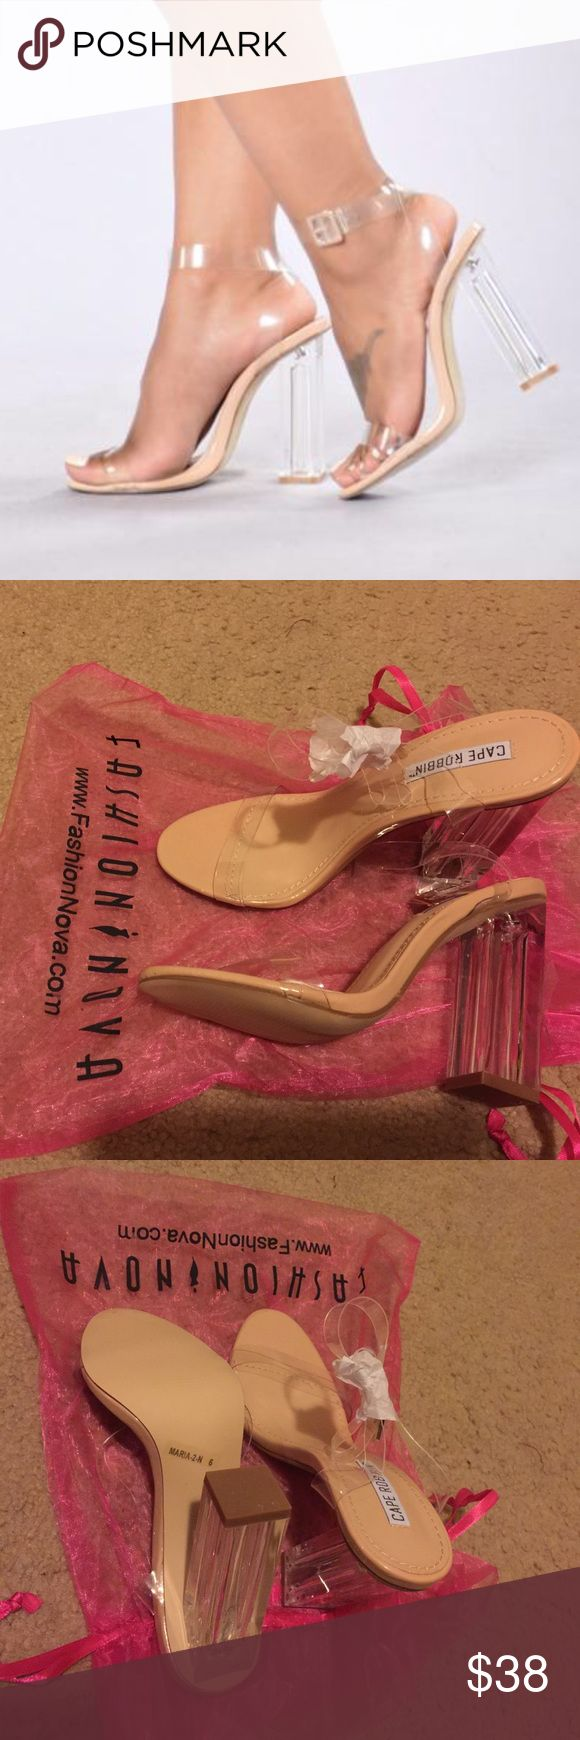 Fashion Nova Nude Glass Slipper Brand new nude glass slipper size 6. 3 1/2 inch clear heel. Ordered off fashion nova. Very fashionable and currently in trend! Fashion Nova Shoes Heels